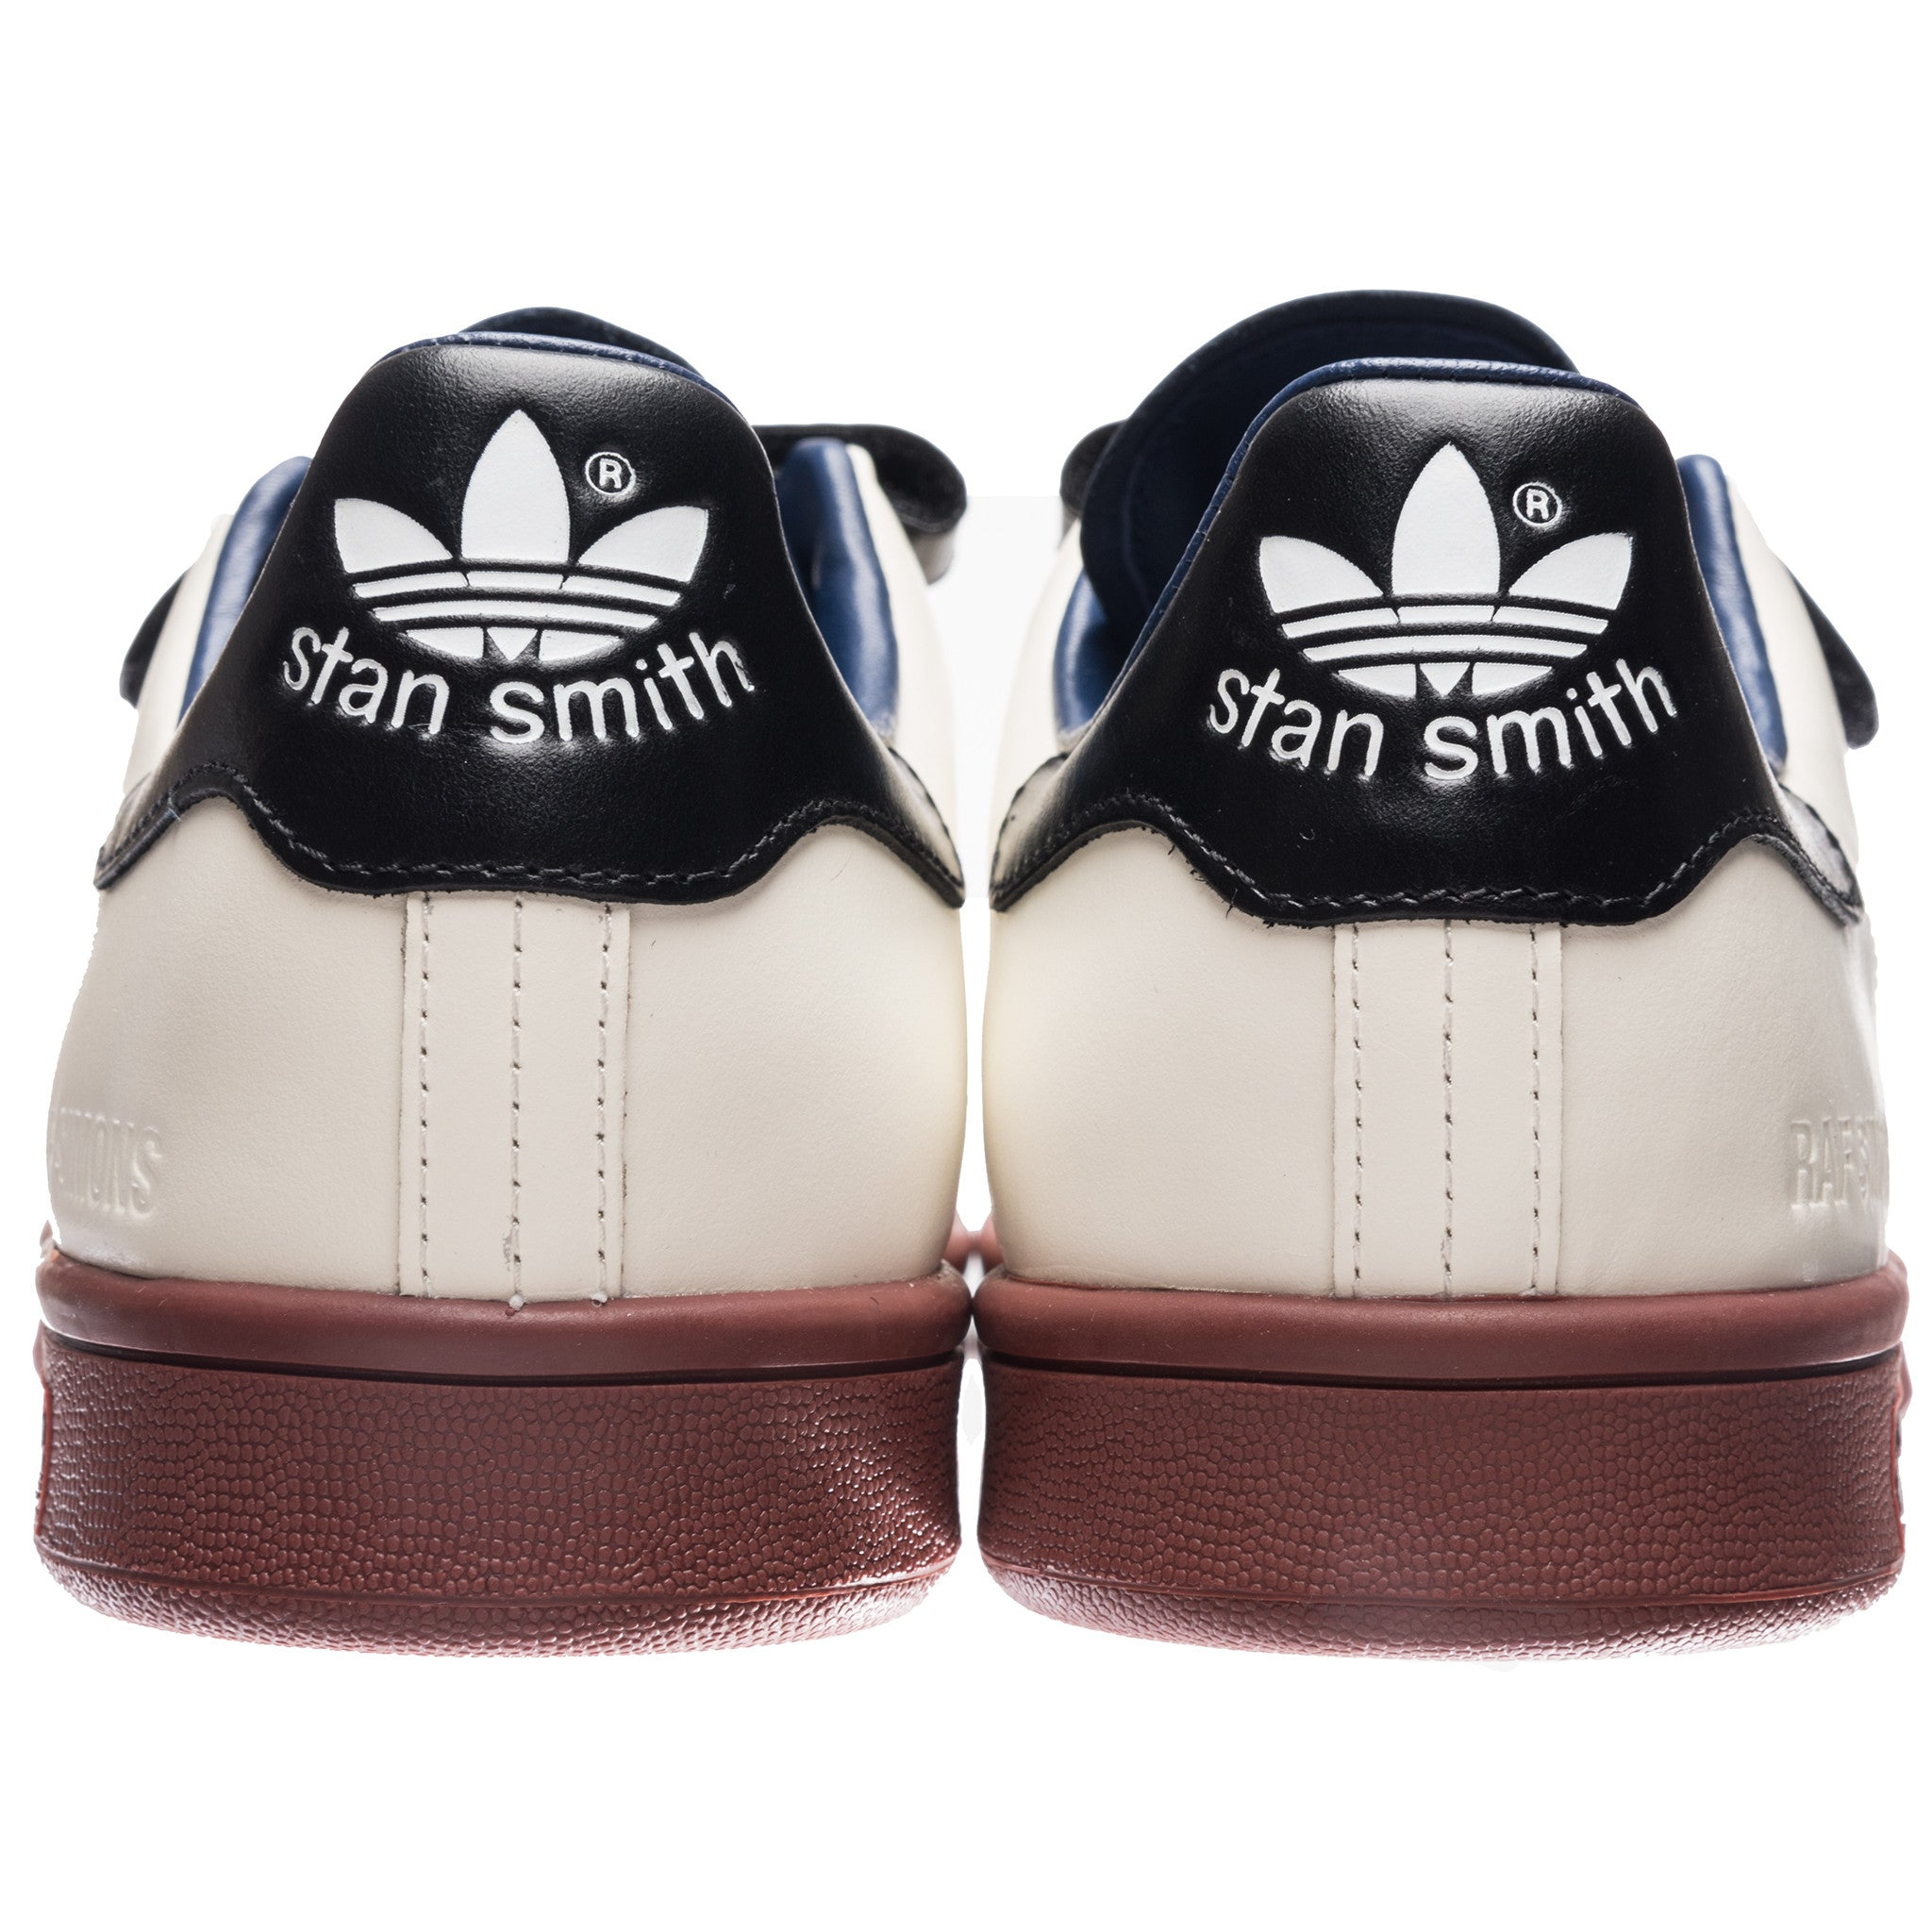 RS Stan Smith CF